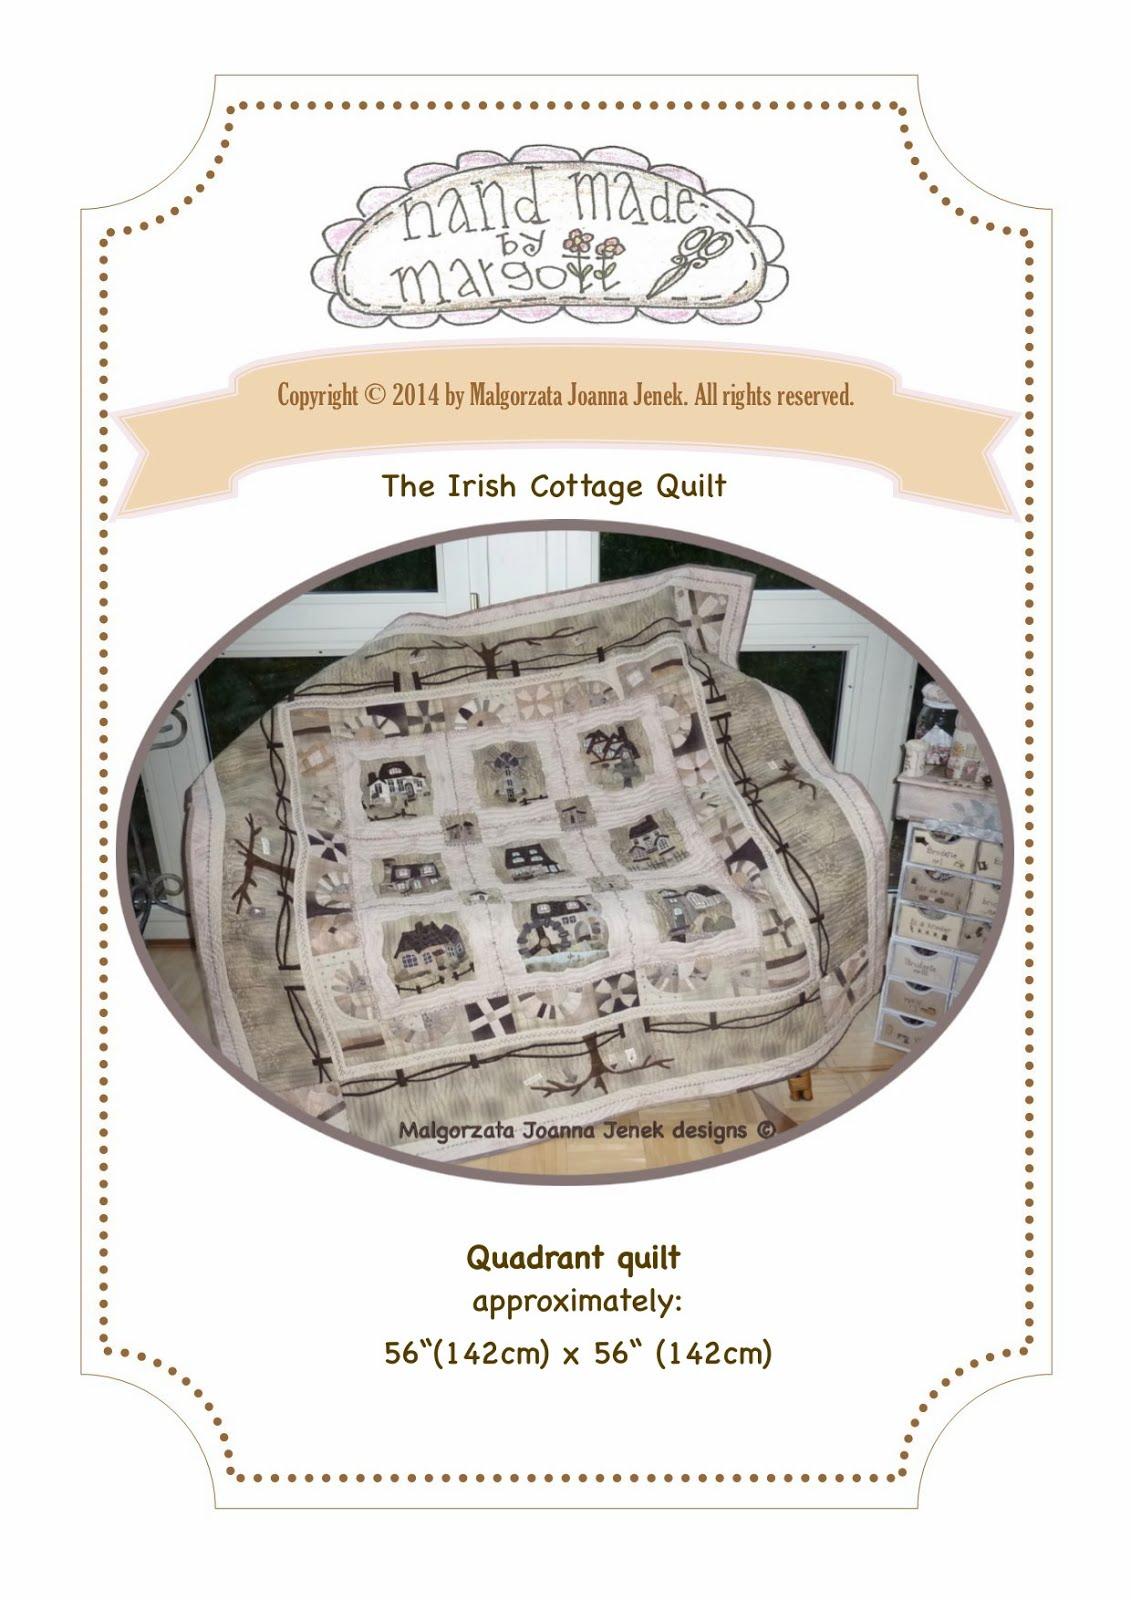 The Irish Cottage Quilt©